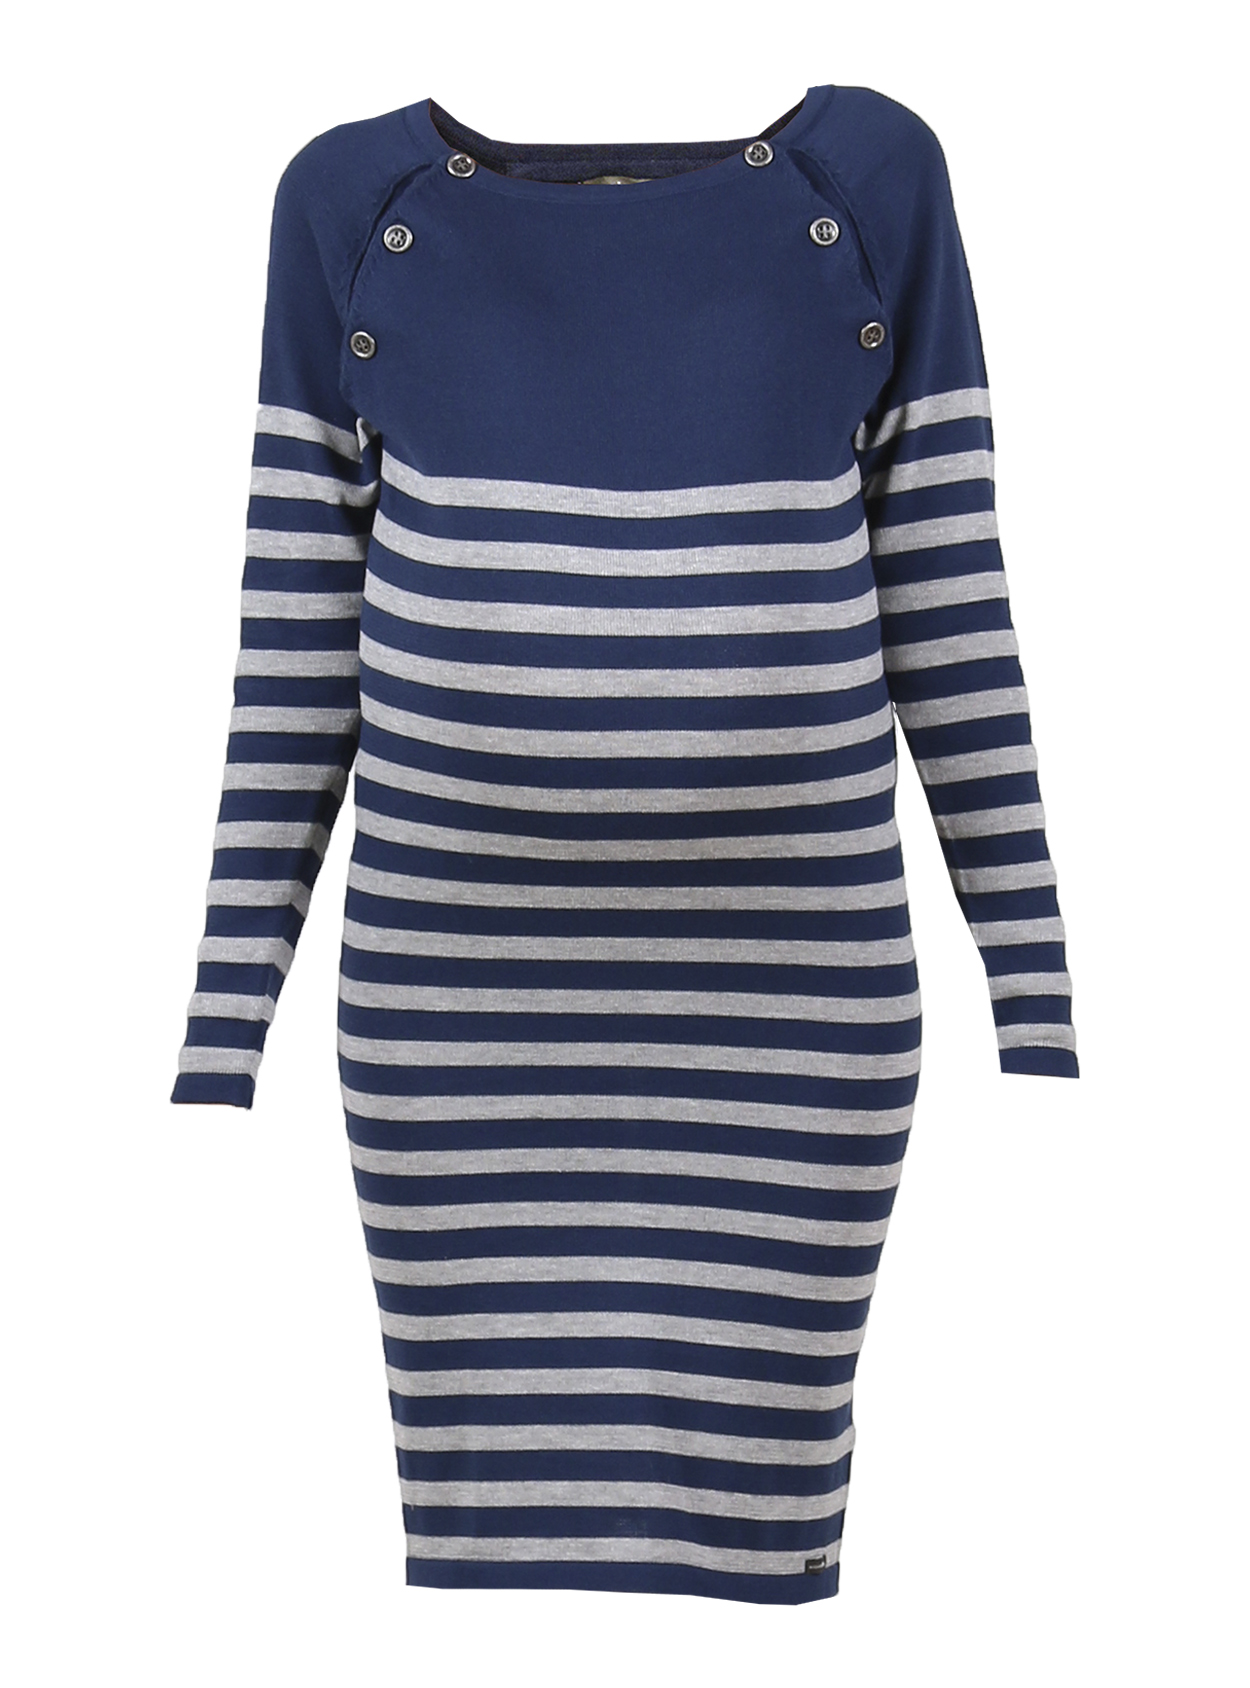 5ae0baabc33 Blue and grey striped knitted maternity and nursing jumper dress